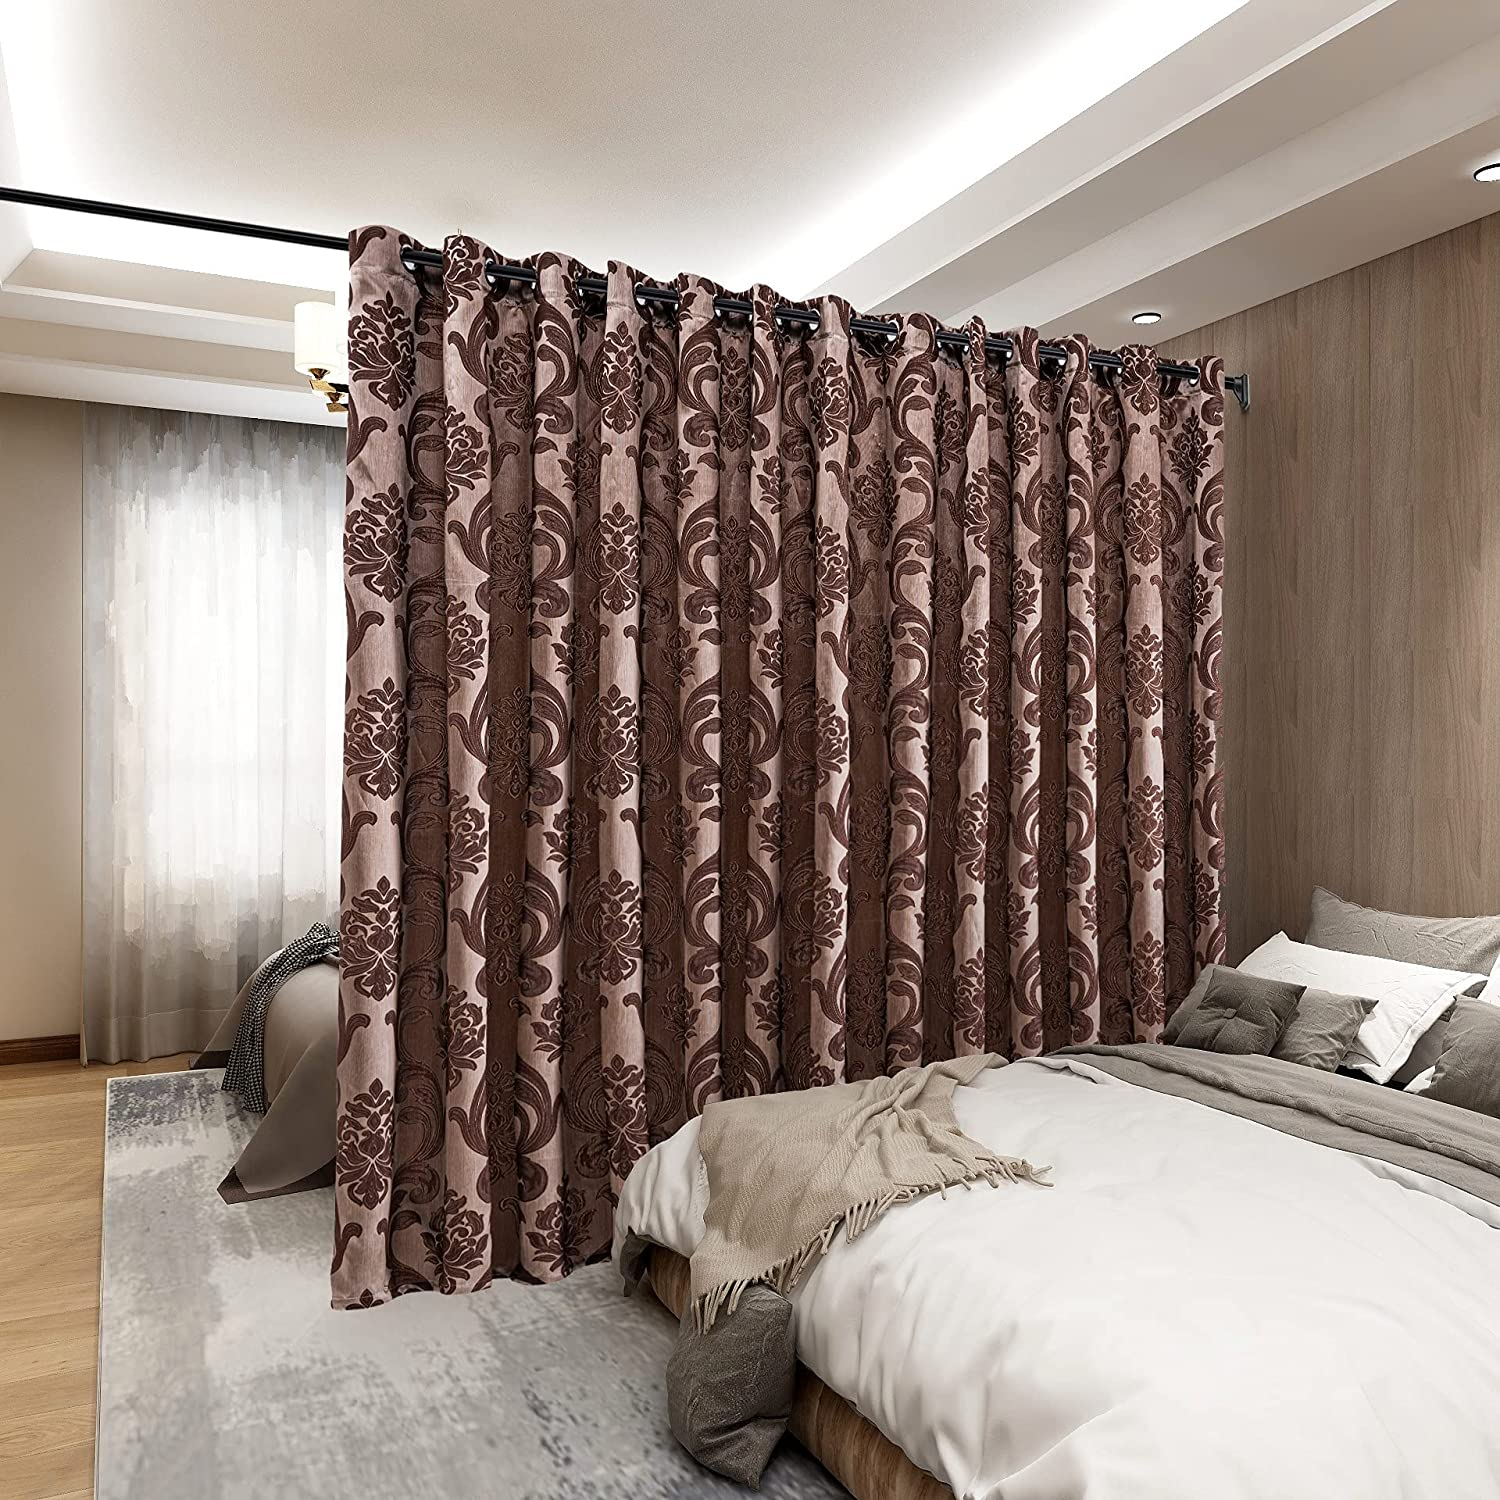 Attention brand NAPEARL Patio San Diego Mall Door Curtains Glass Damask for Sliding